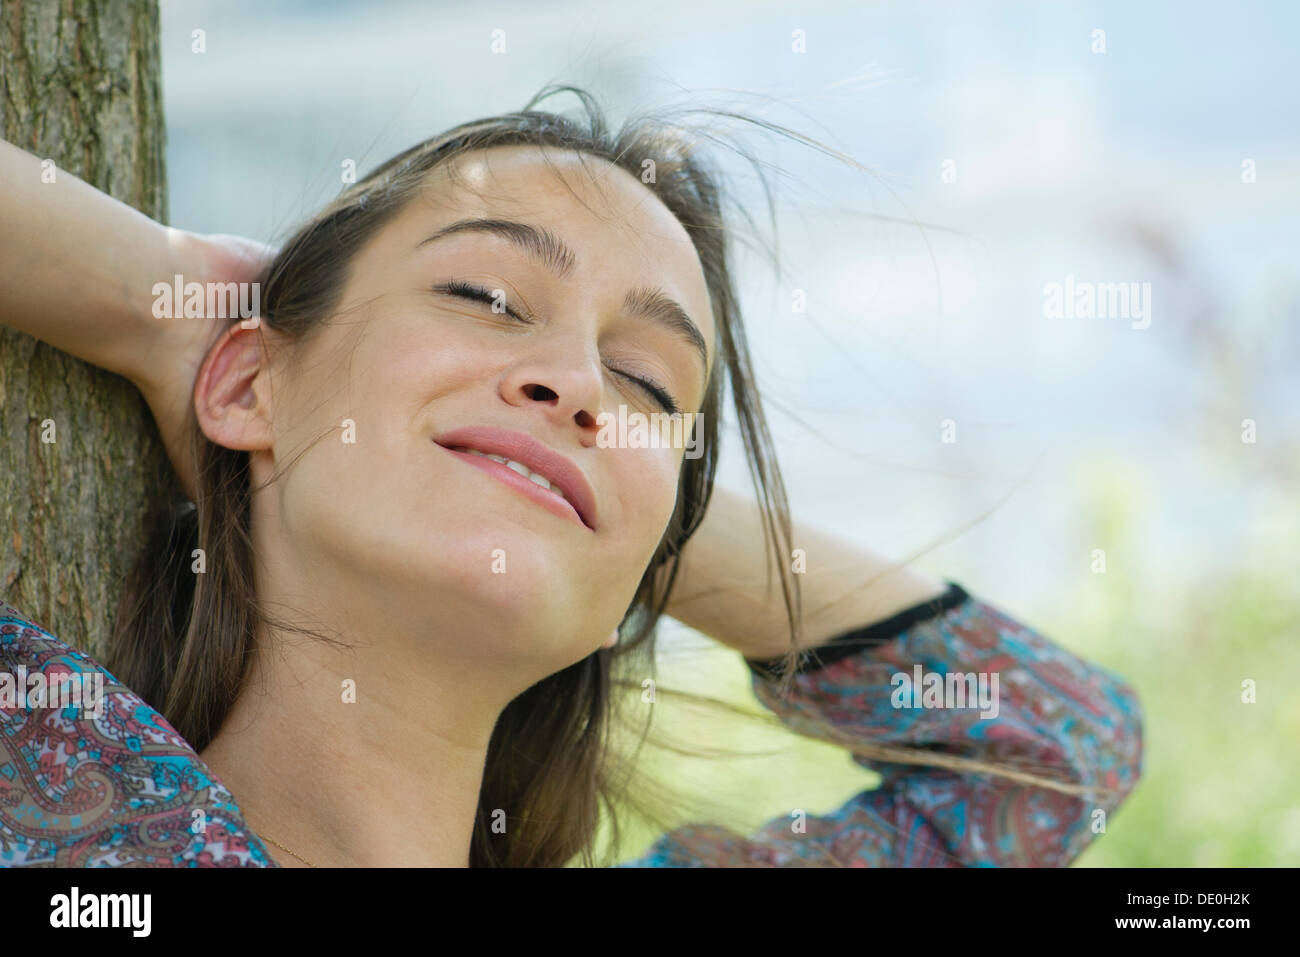 Woman relaxing outdoors, portrait - Stock Image